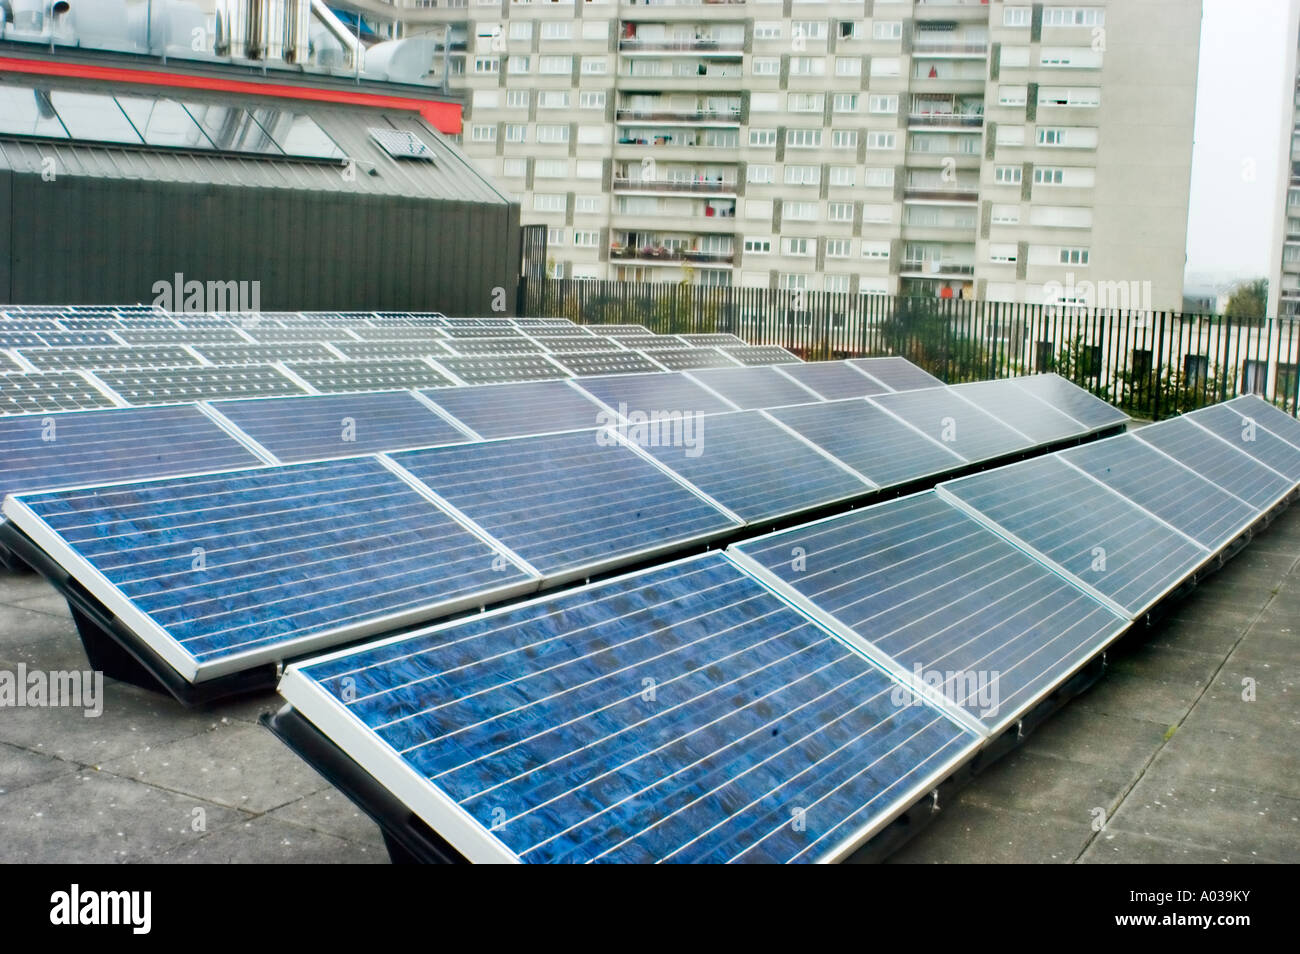 Paris, France,  Renewable Energy Solar Photo voltaic Cell Panels Outside on Roof - Stock Image